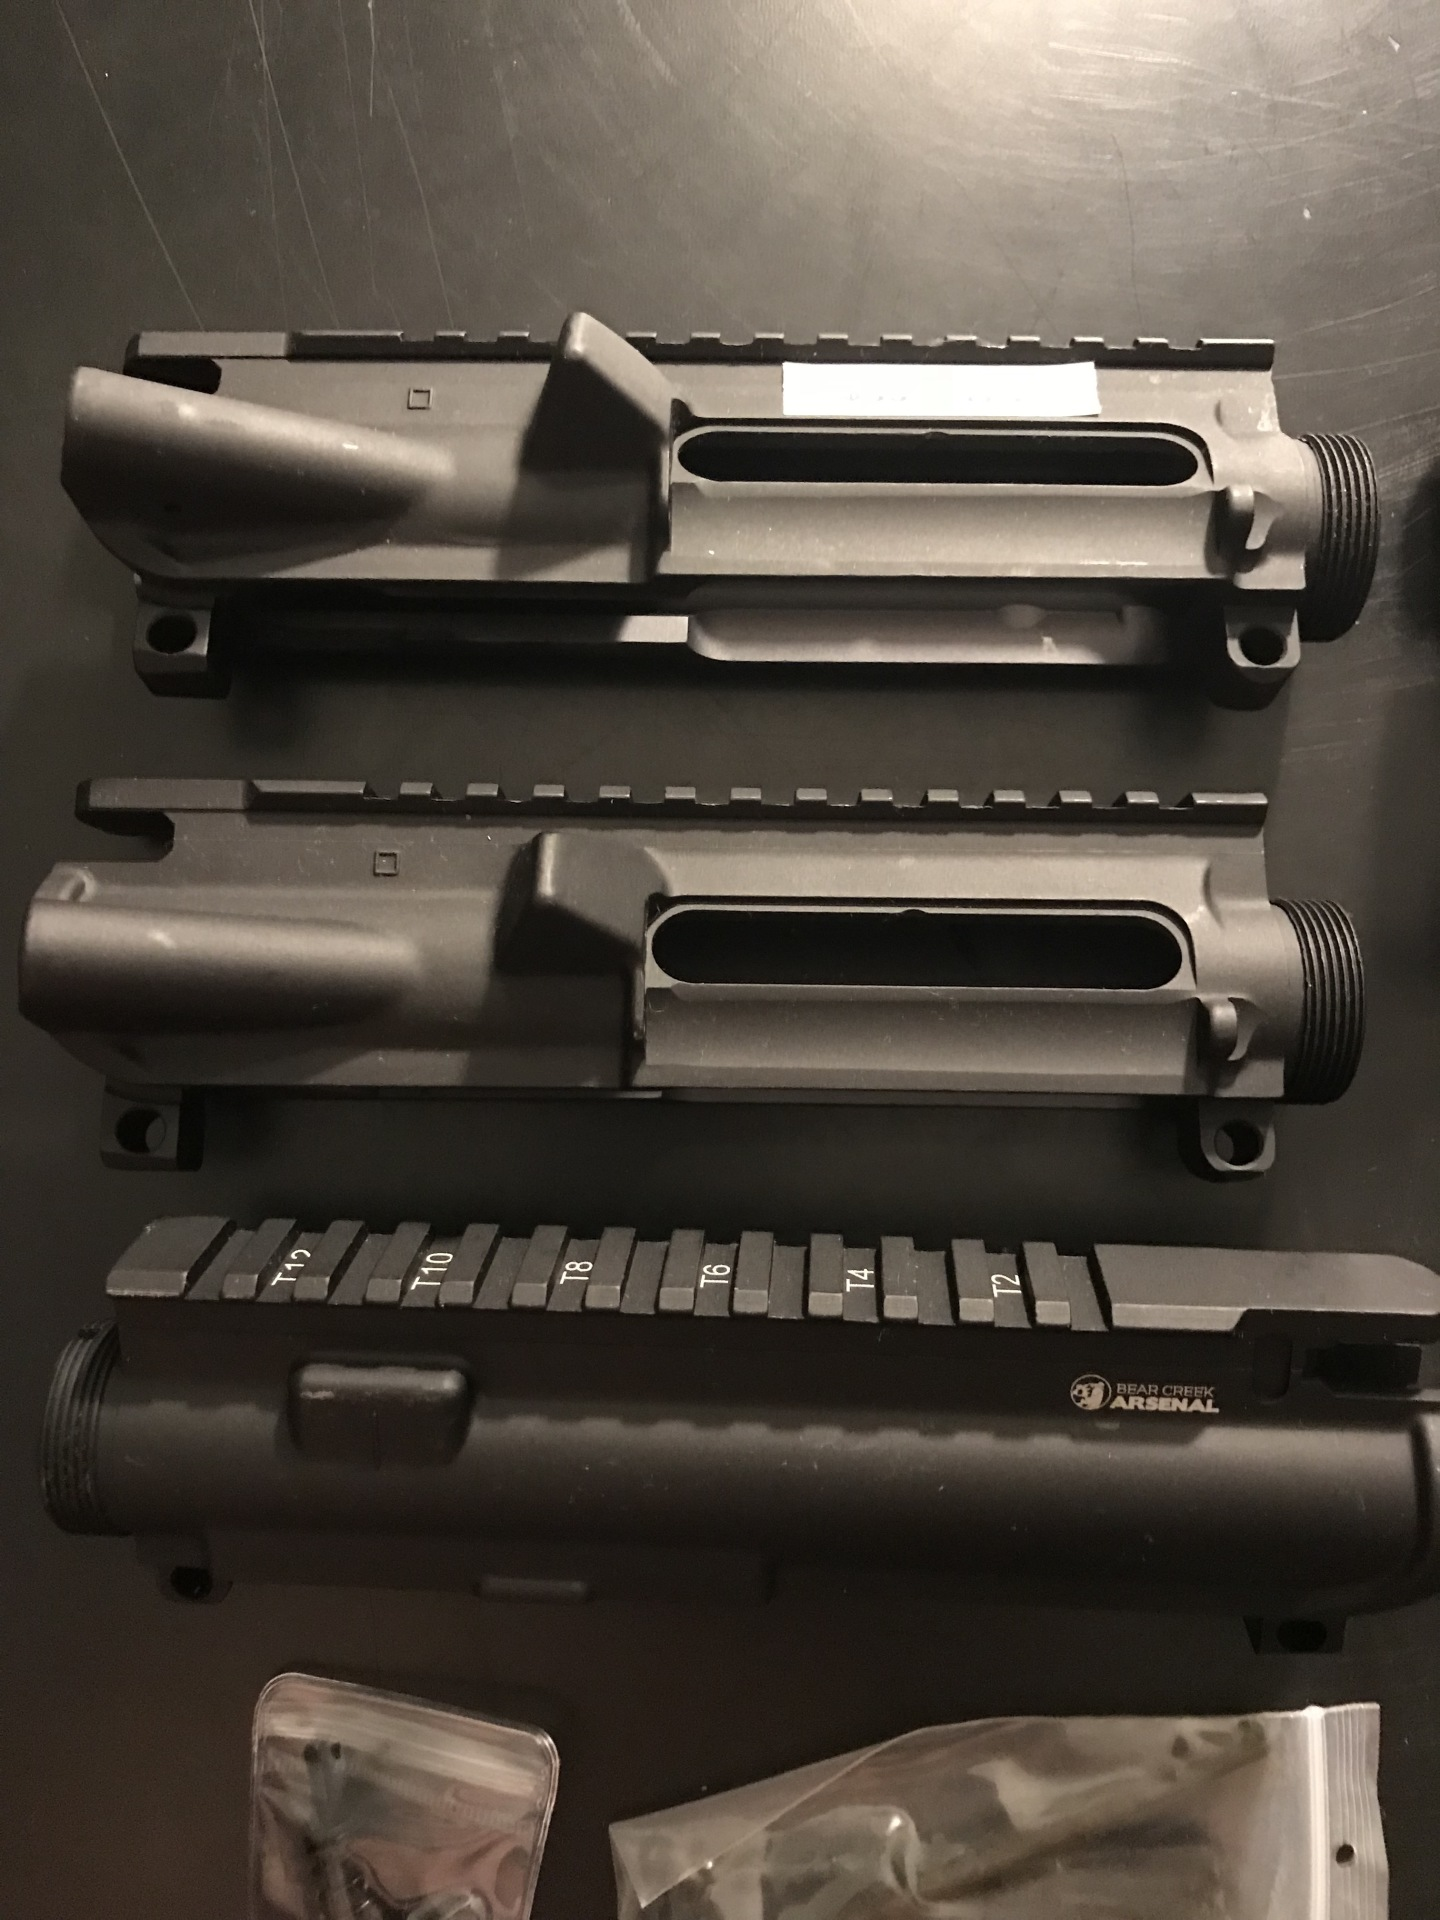 Stripped uppers Bear Creek Arsenal $55